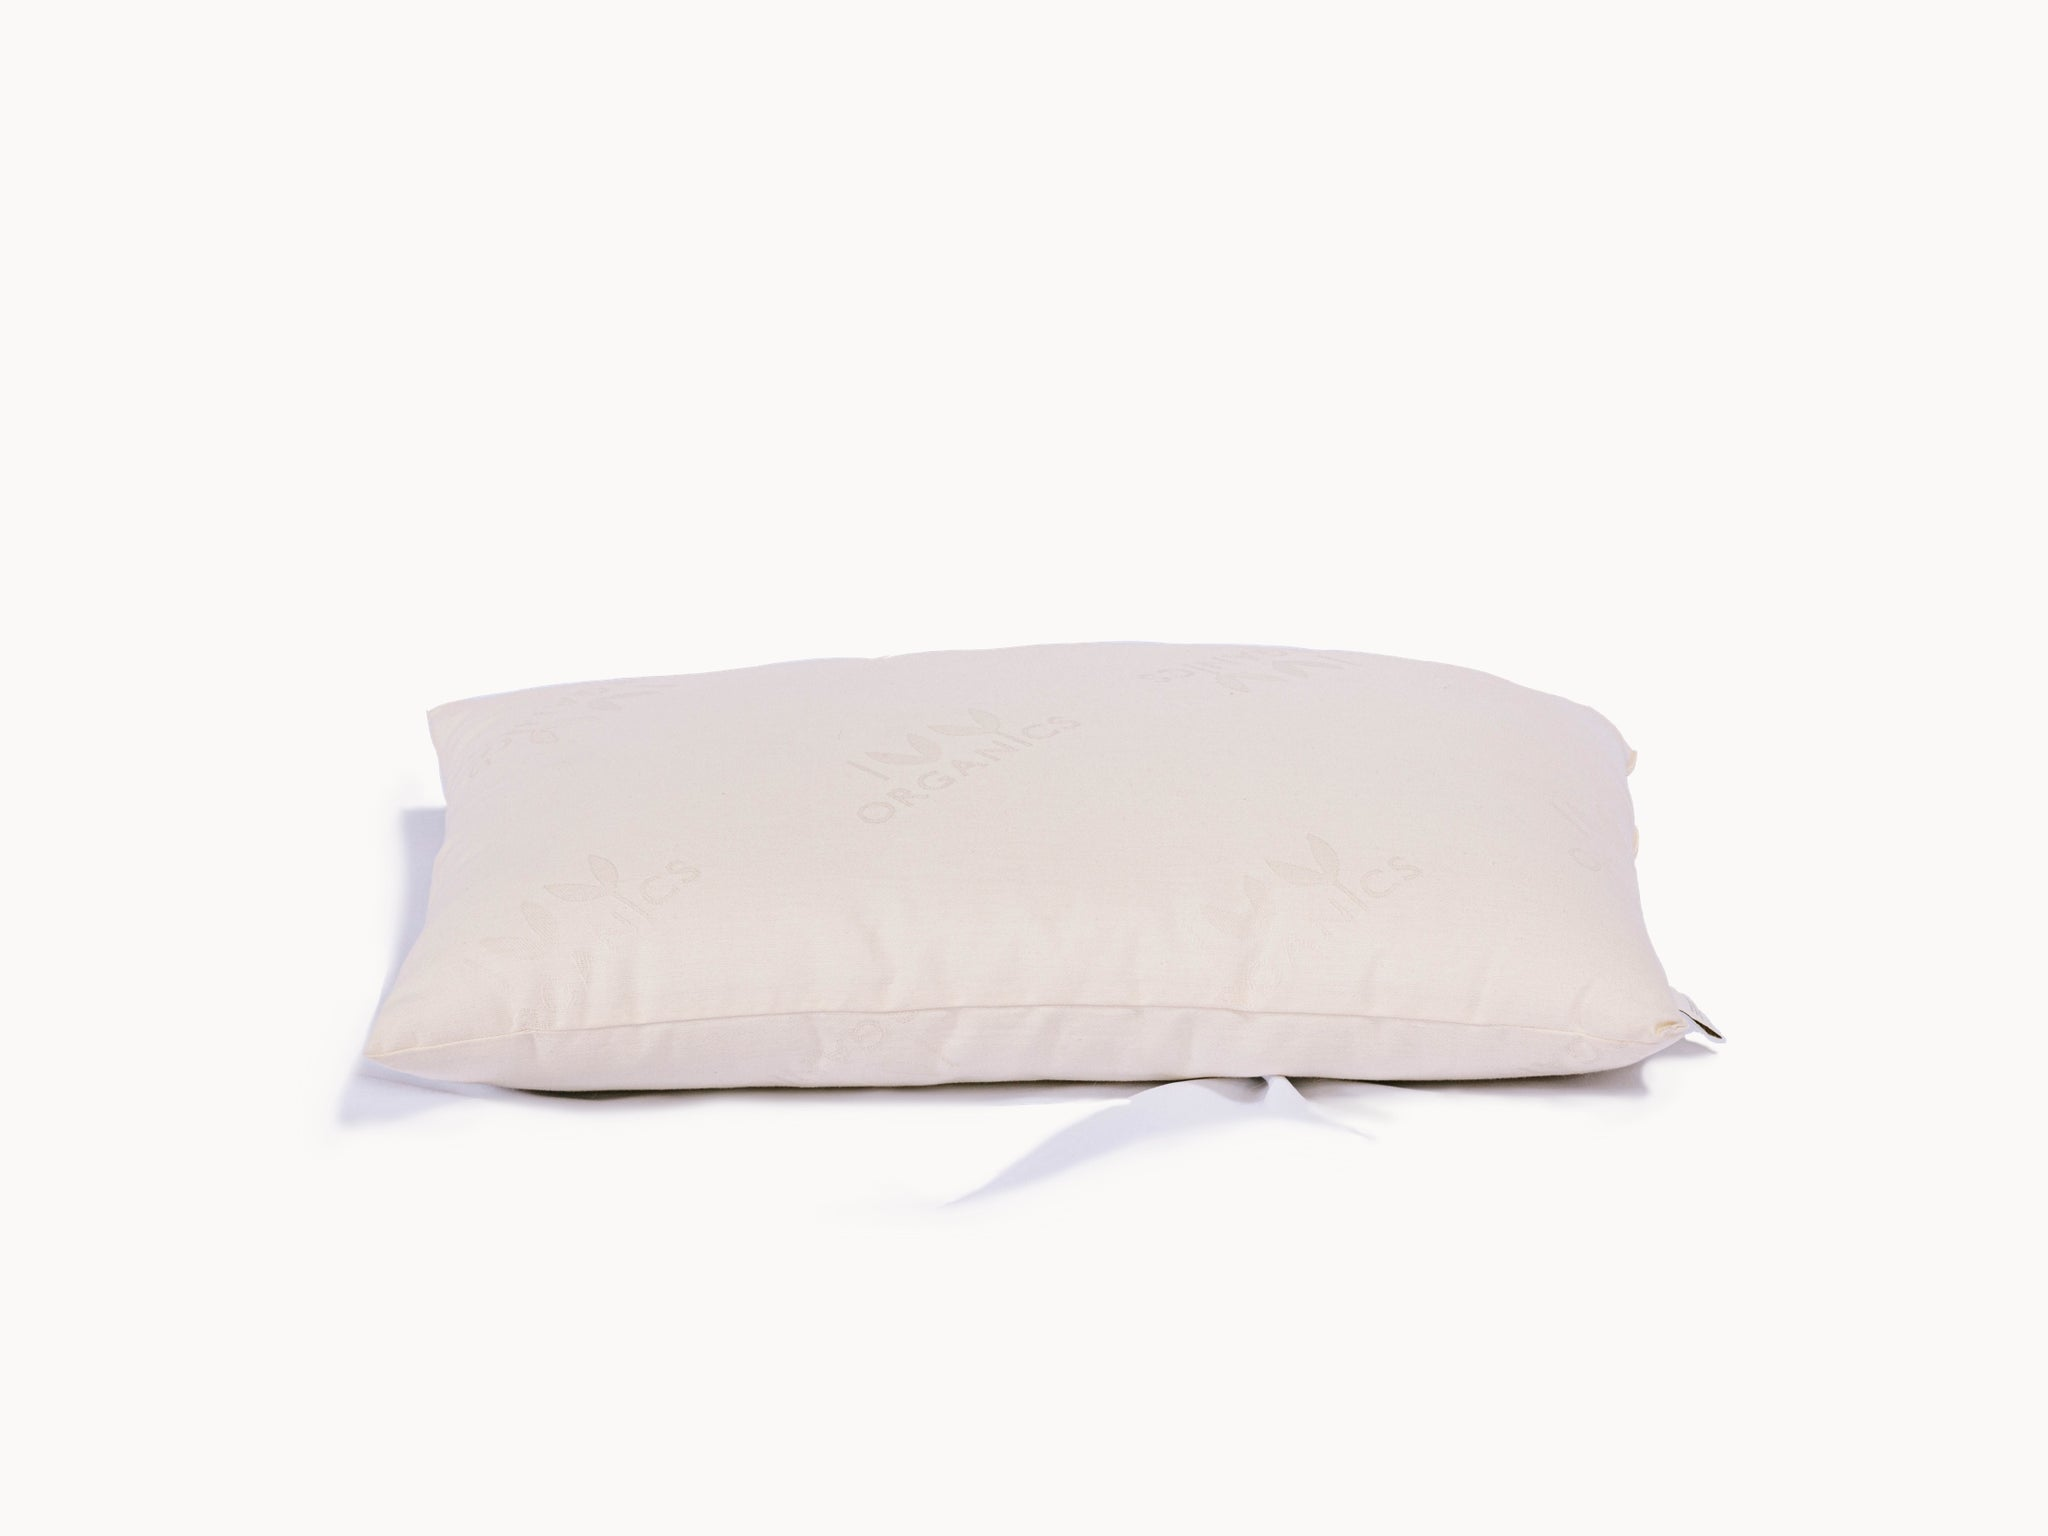 Certified Organic Cotton Pillow - PJs Sleep Company | Luxury Organic Mattresses & Bedding